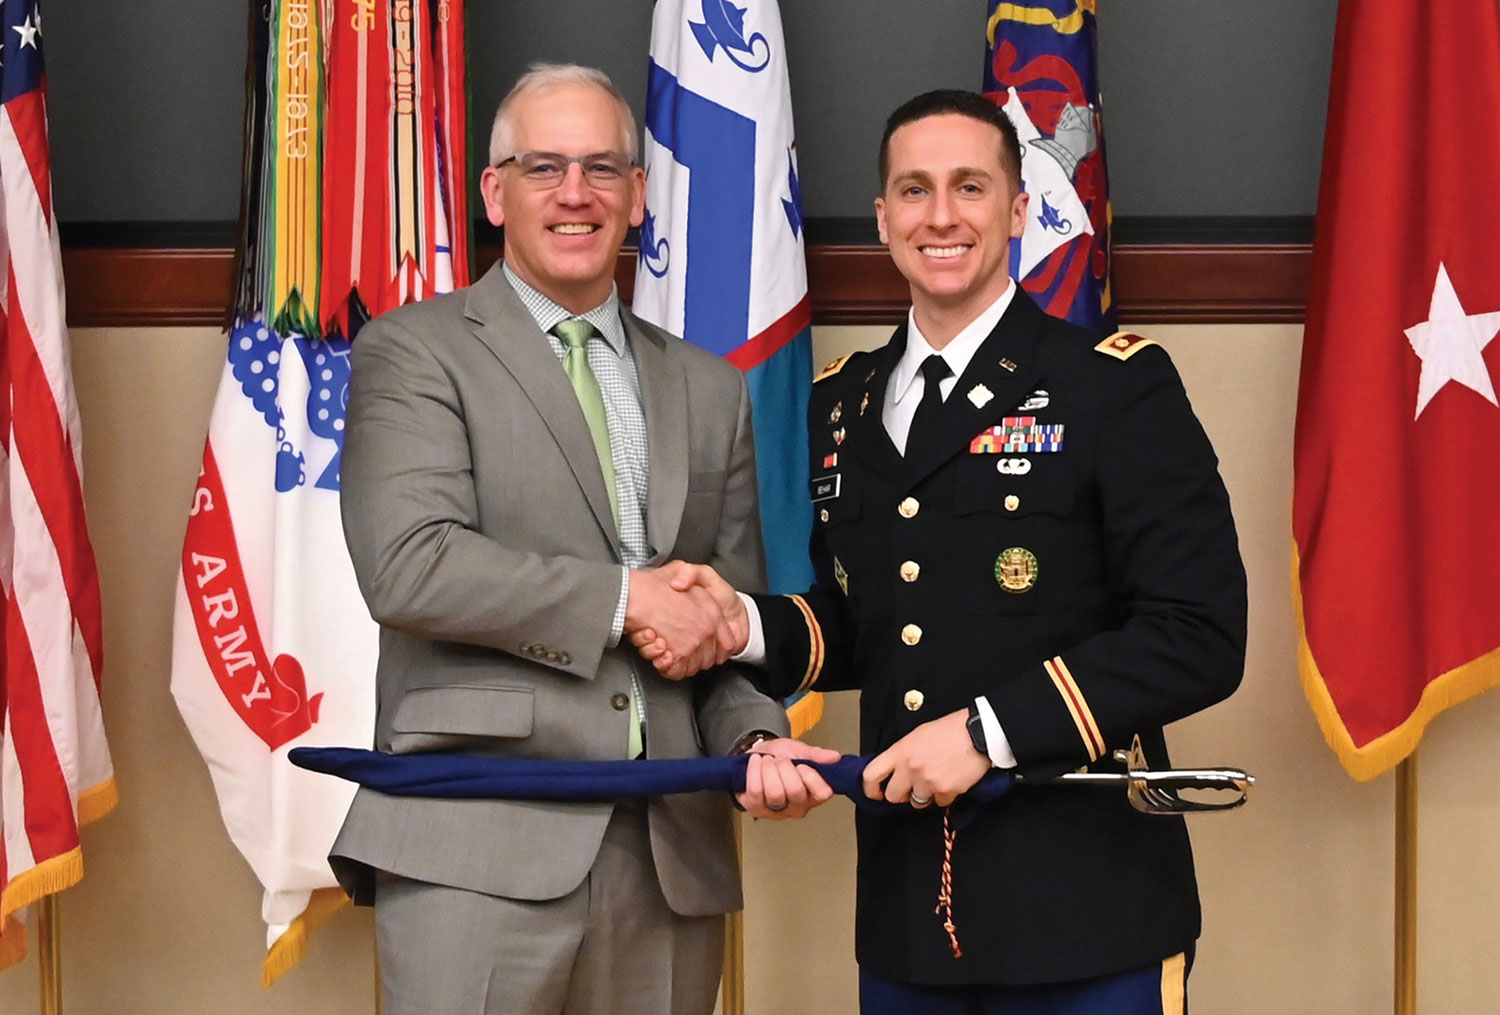 Department of Sustainment and Force Management (DSFM) Deputy Director Paul Schlimm presents the General James M. Wright Master Logistician Award to Maj. Avraham Behar.